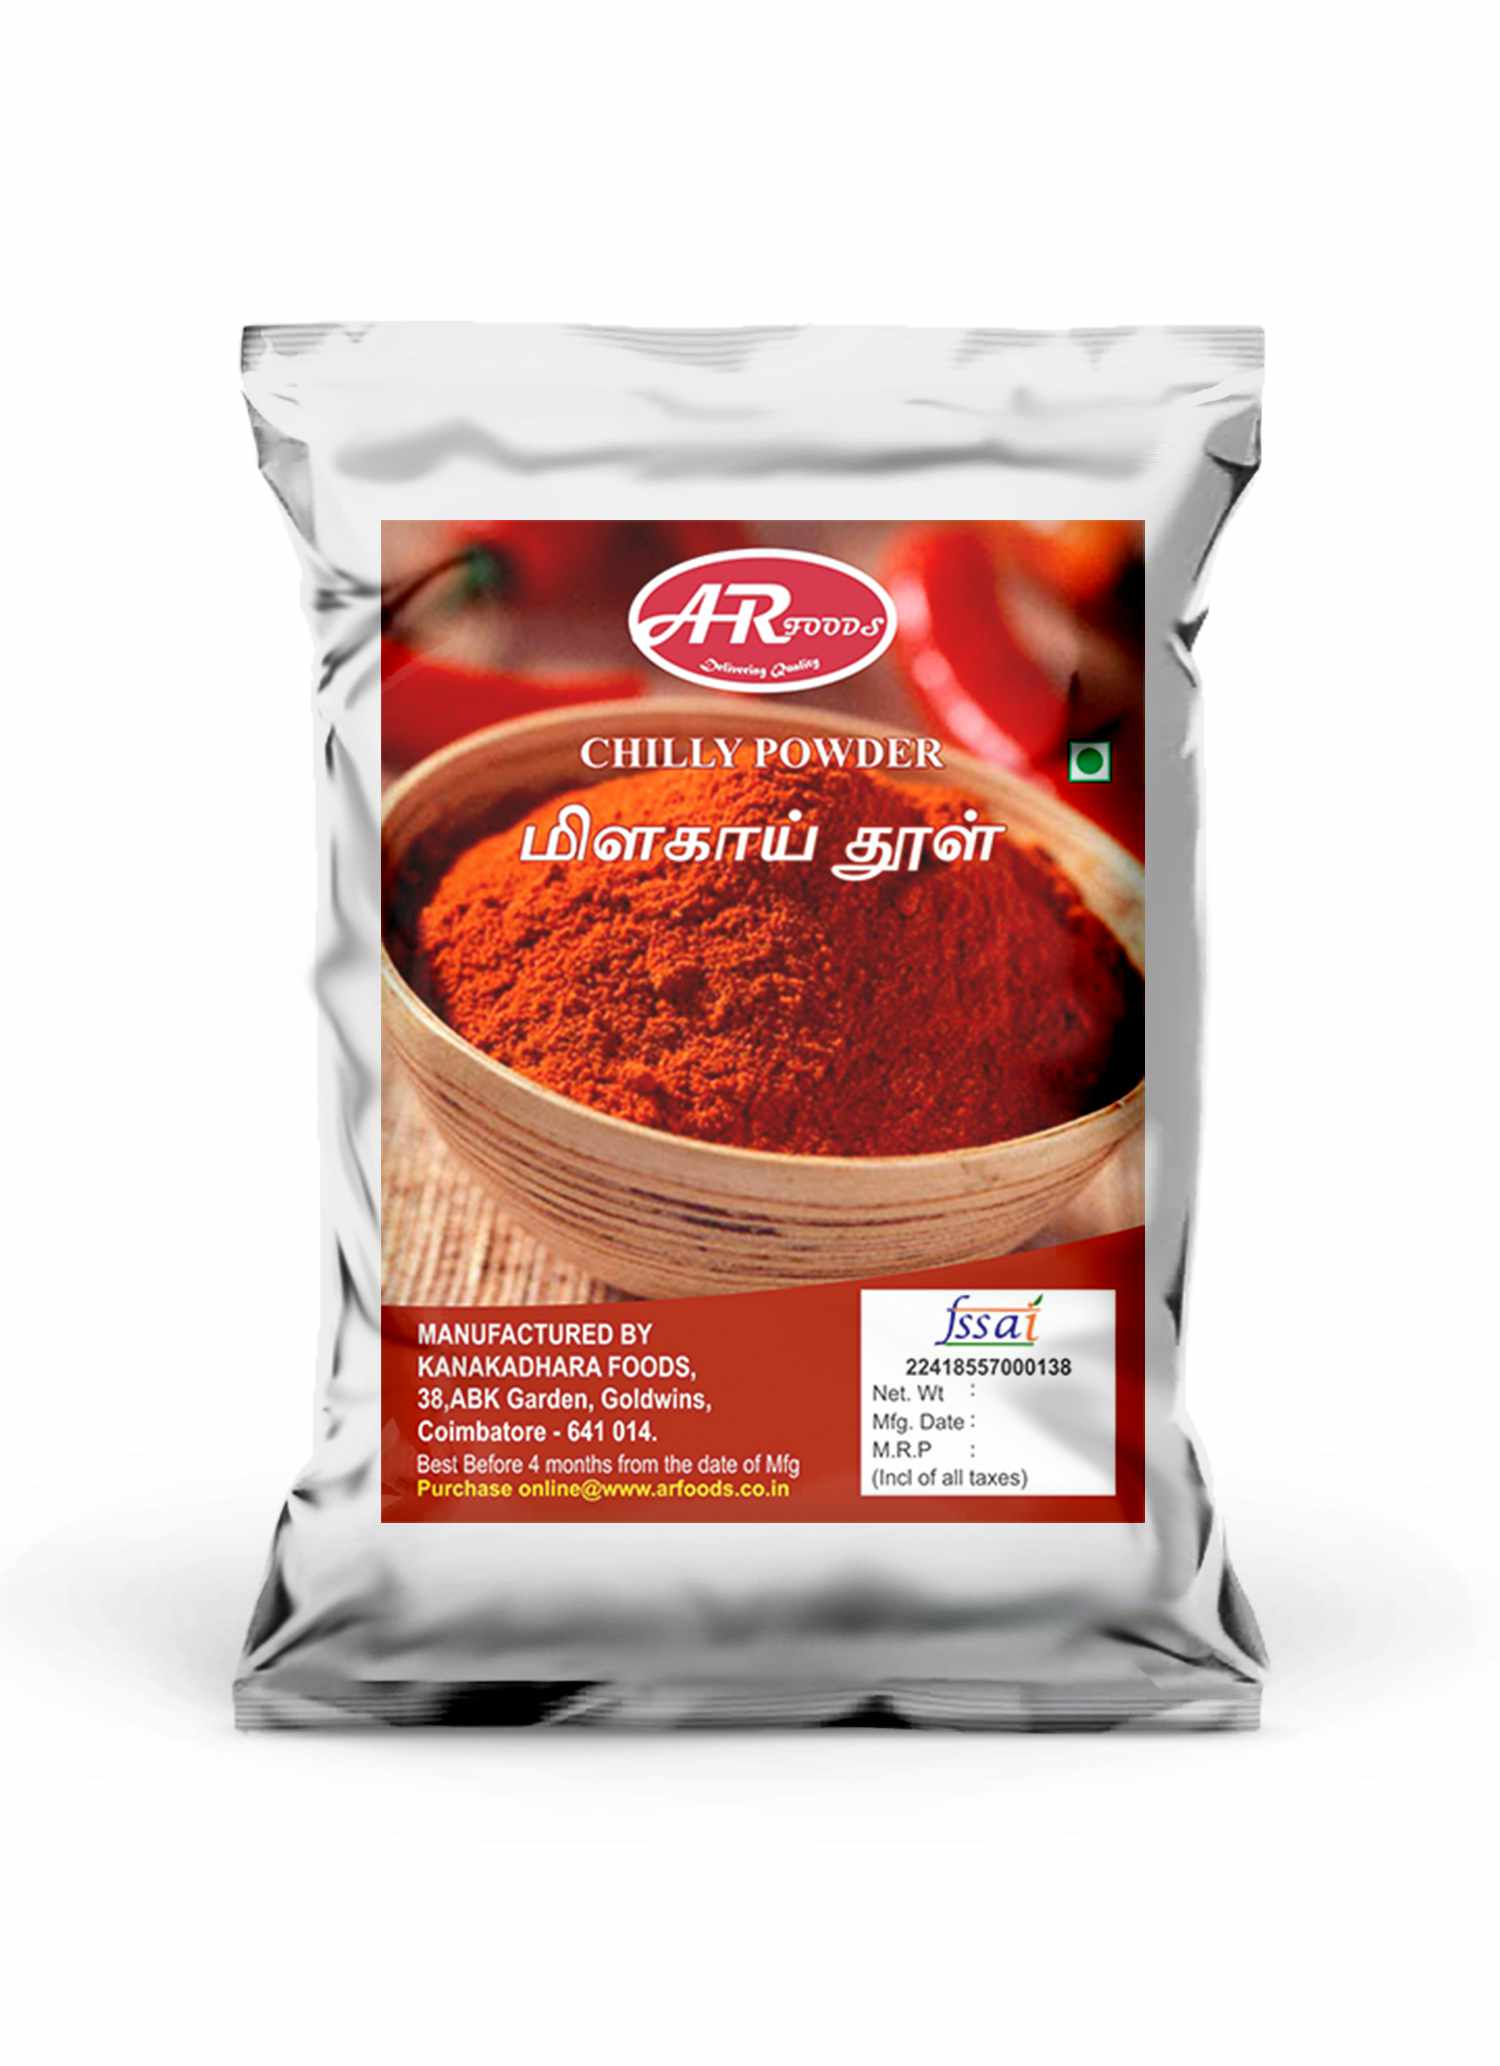 Chilly powder_ar_foods_coimbatore